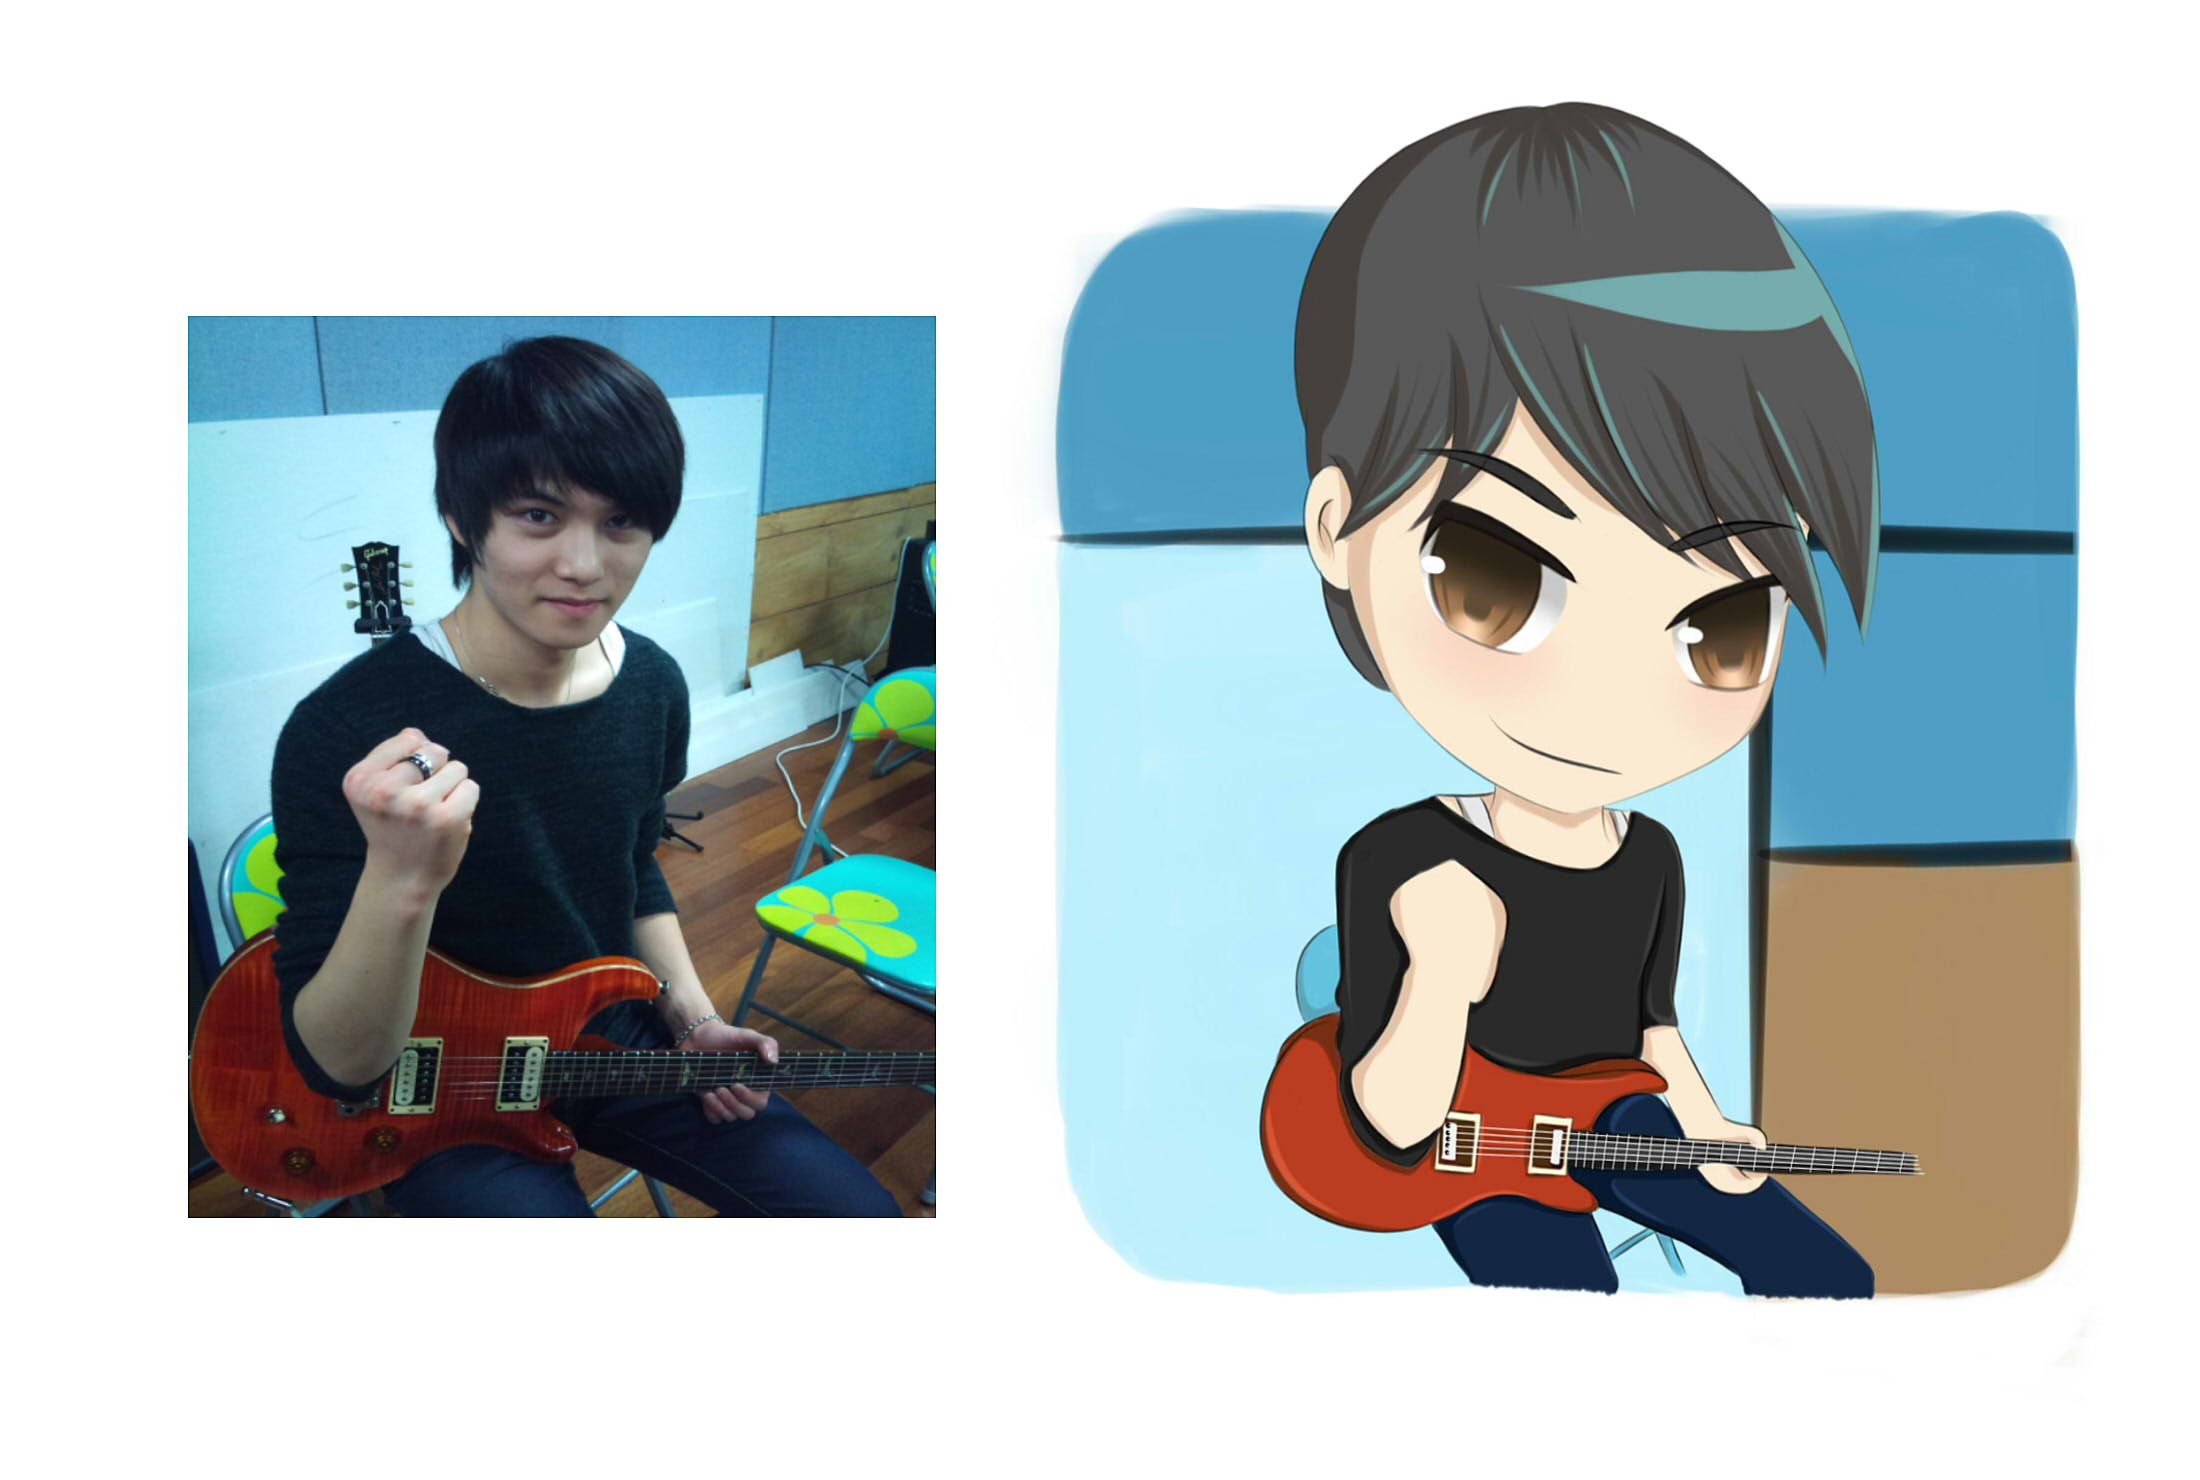 draw a cute chibi version of yourself